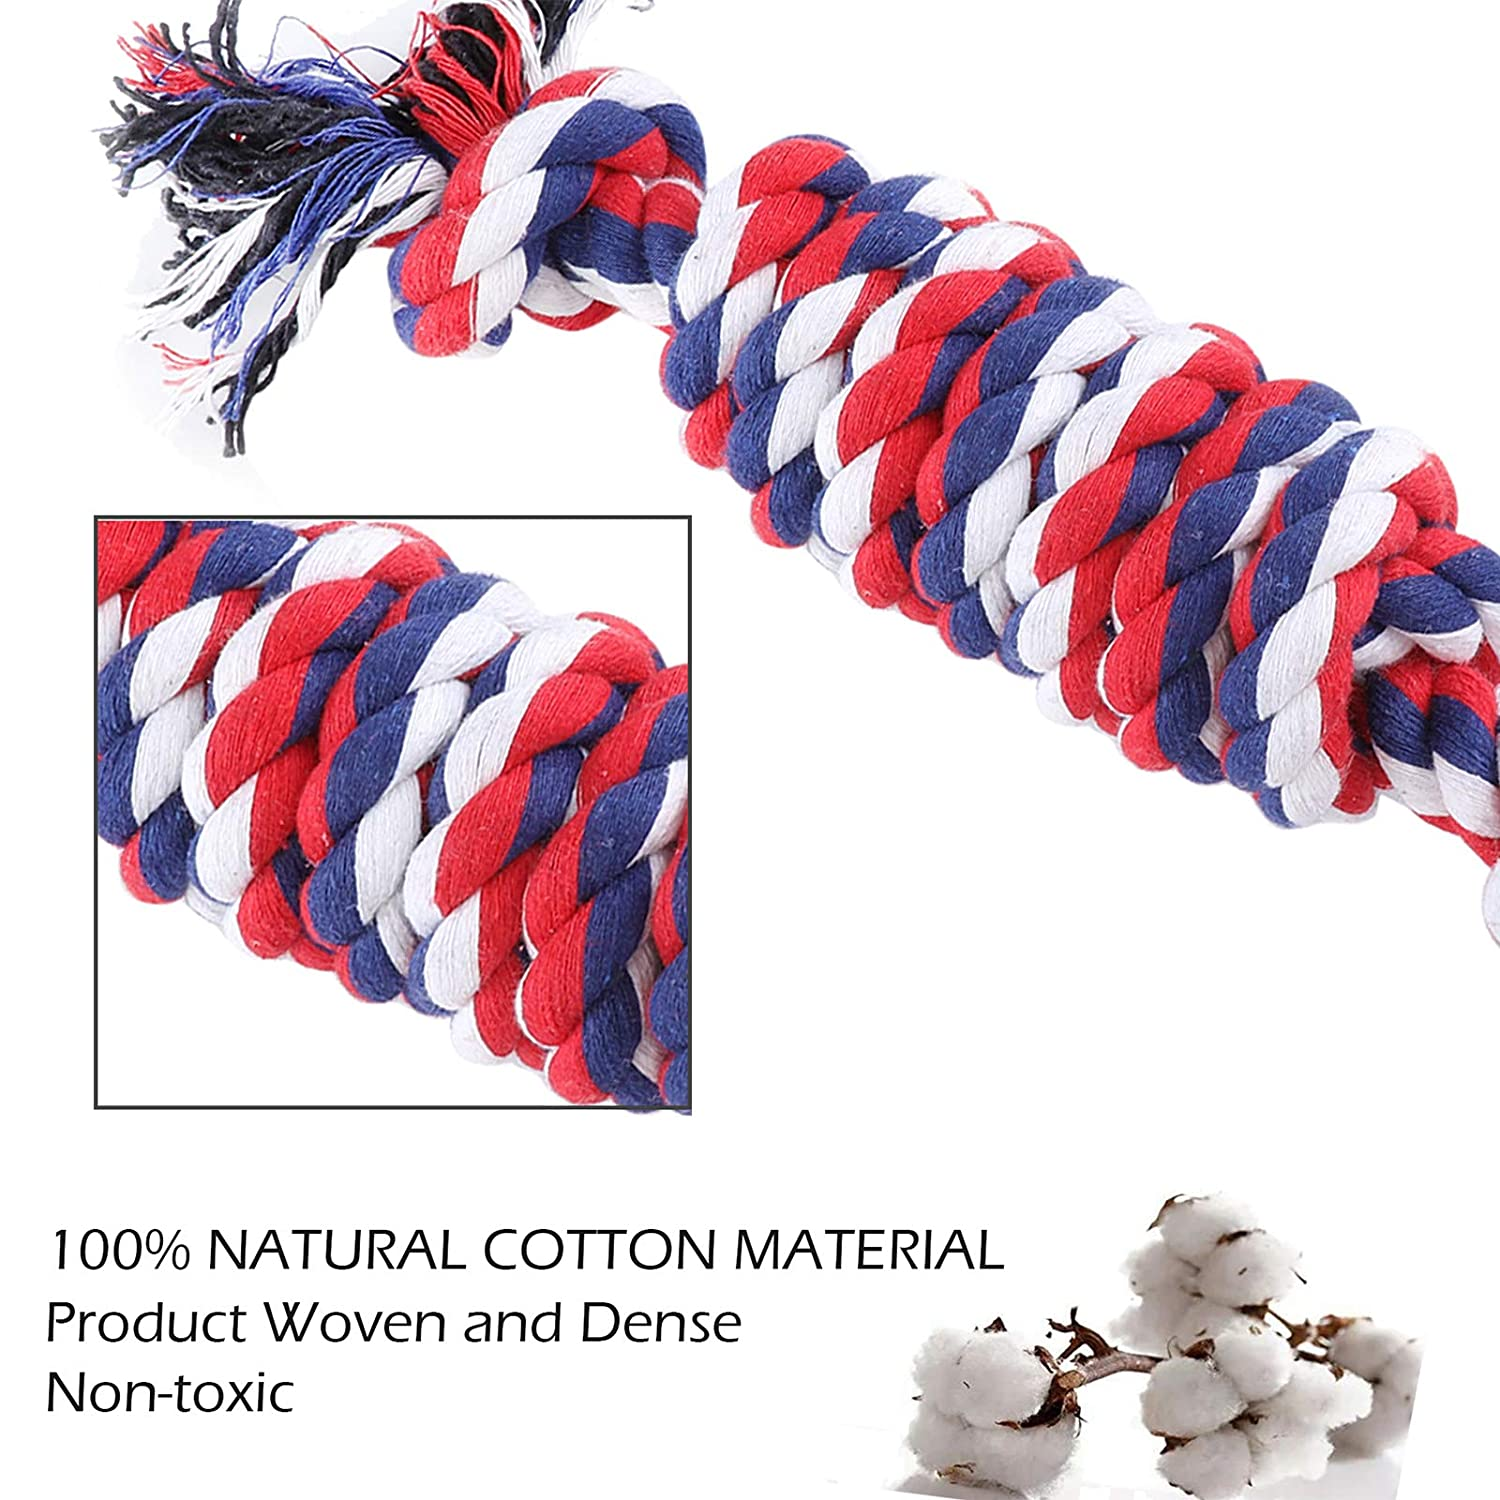 4 pieces HOKEMP Pet Rope Chew Toys Small to Medium Durable Cotton Dog Chew Toy Set Teething Cleaning Training Dog Toy